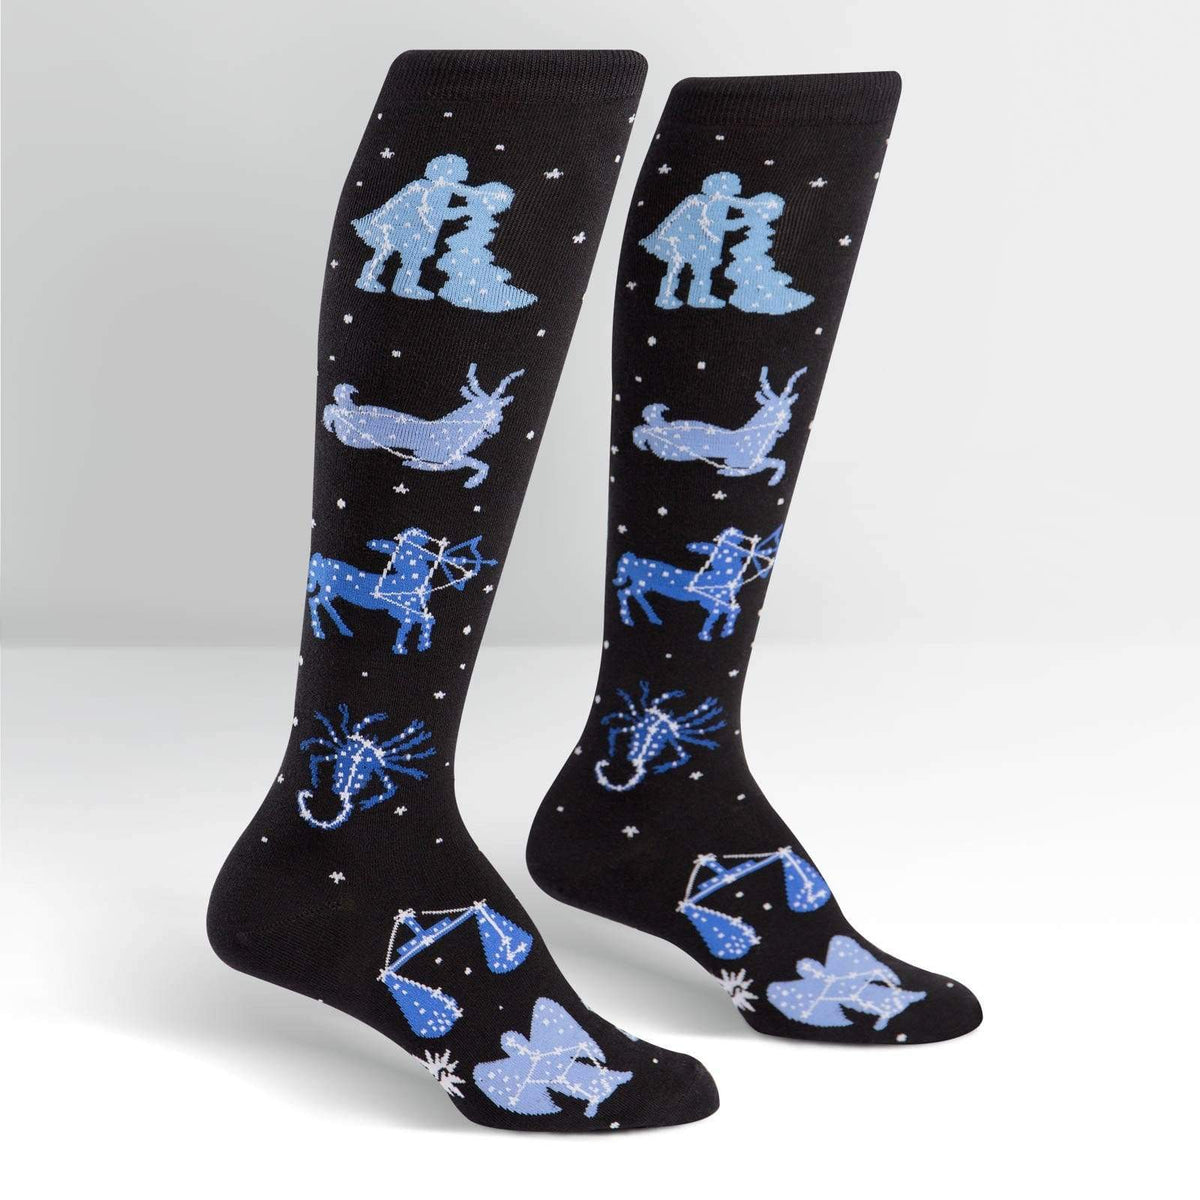 Zodiac Socks Women's Knee High Sock Black